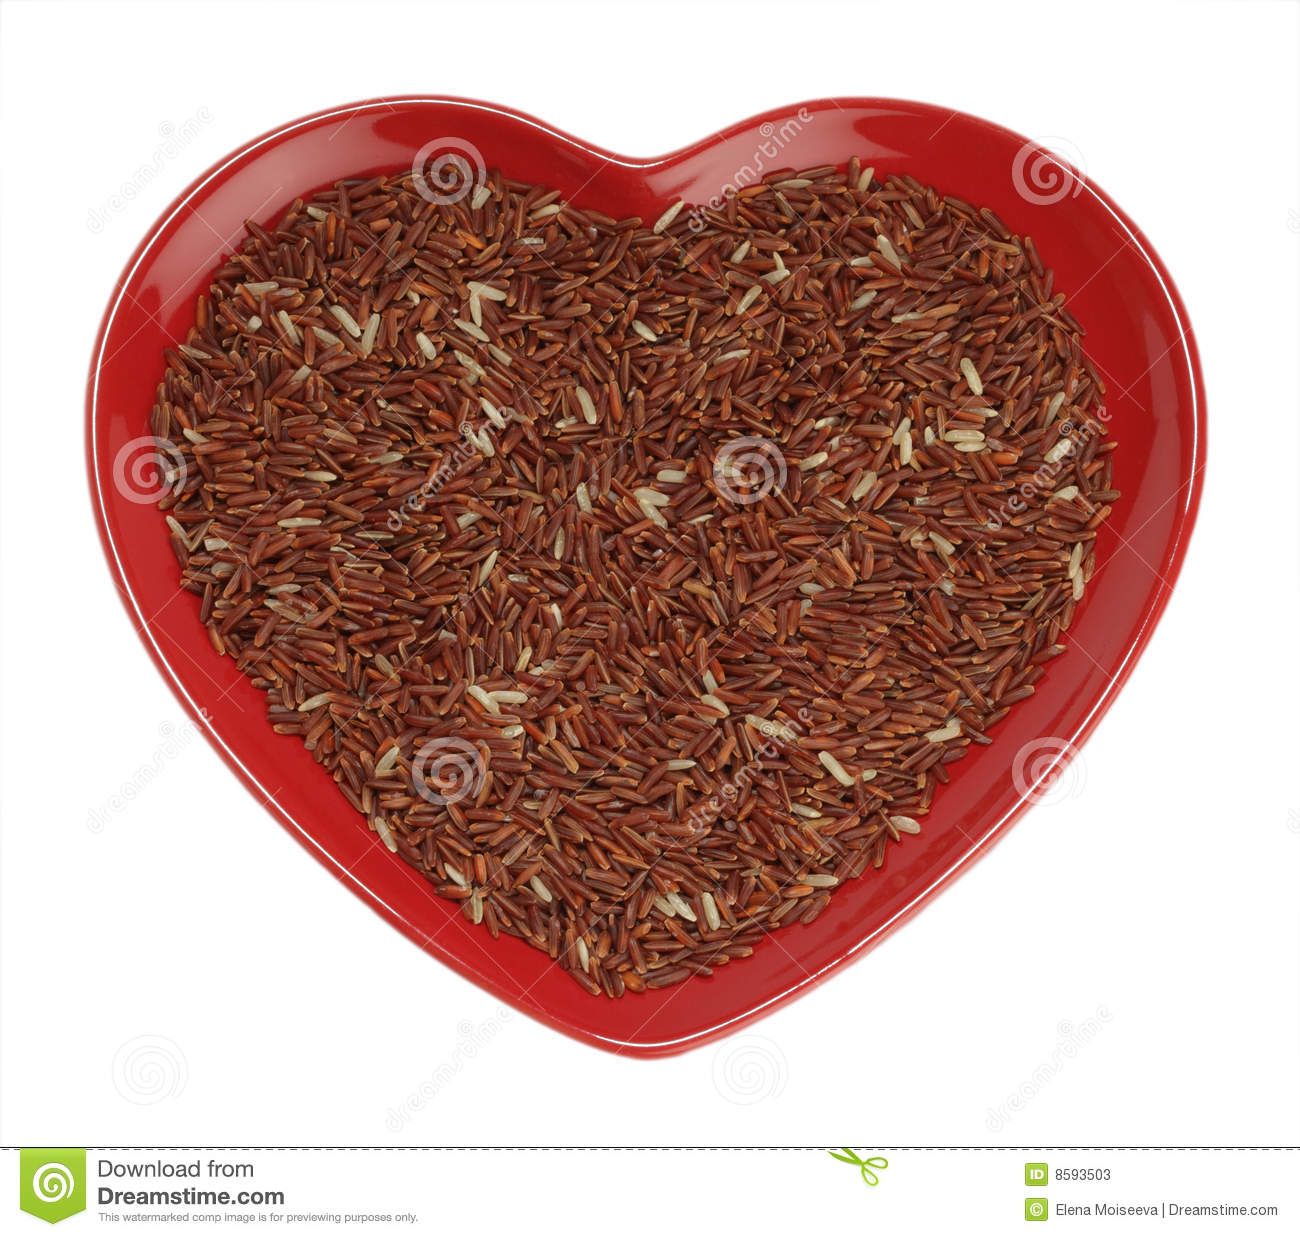 Himalayan Red Long grain Rice in red heart